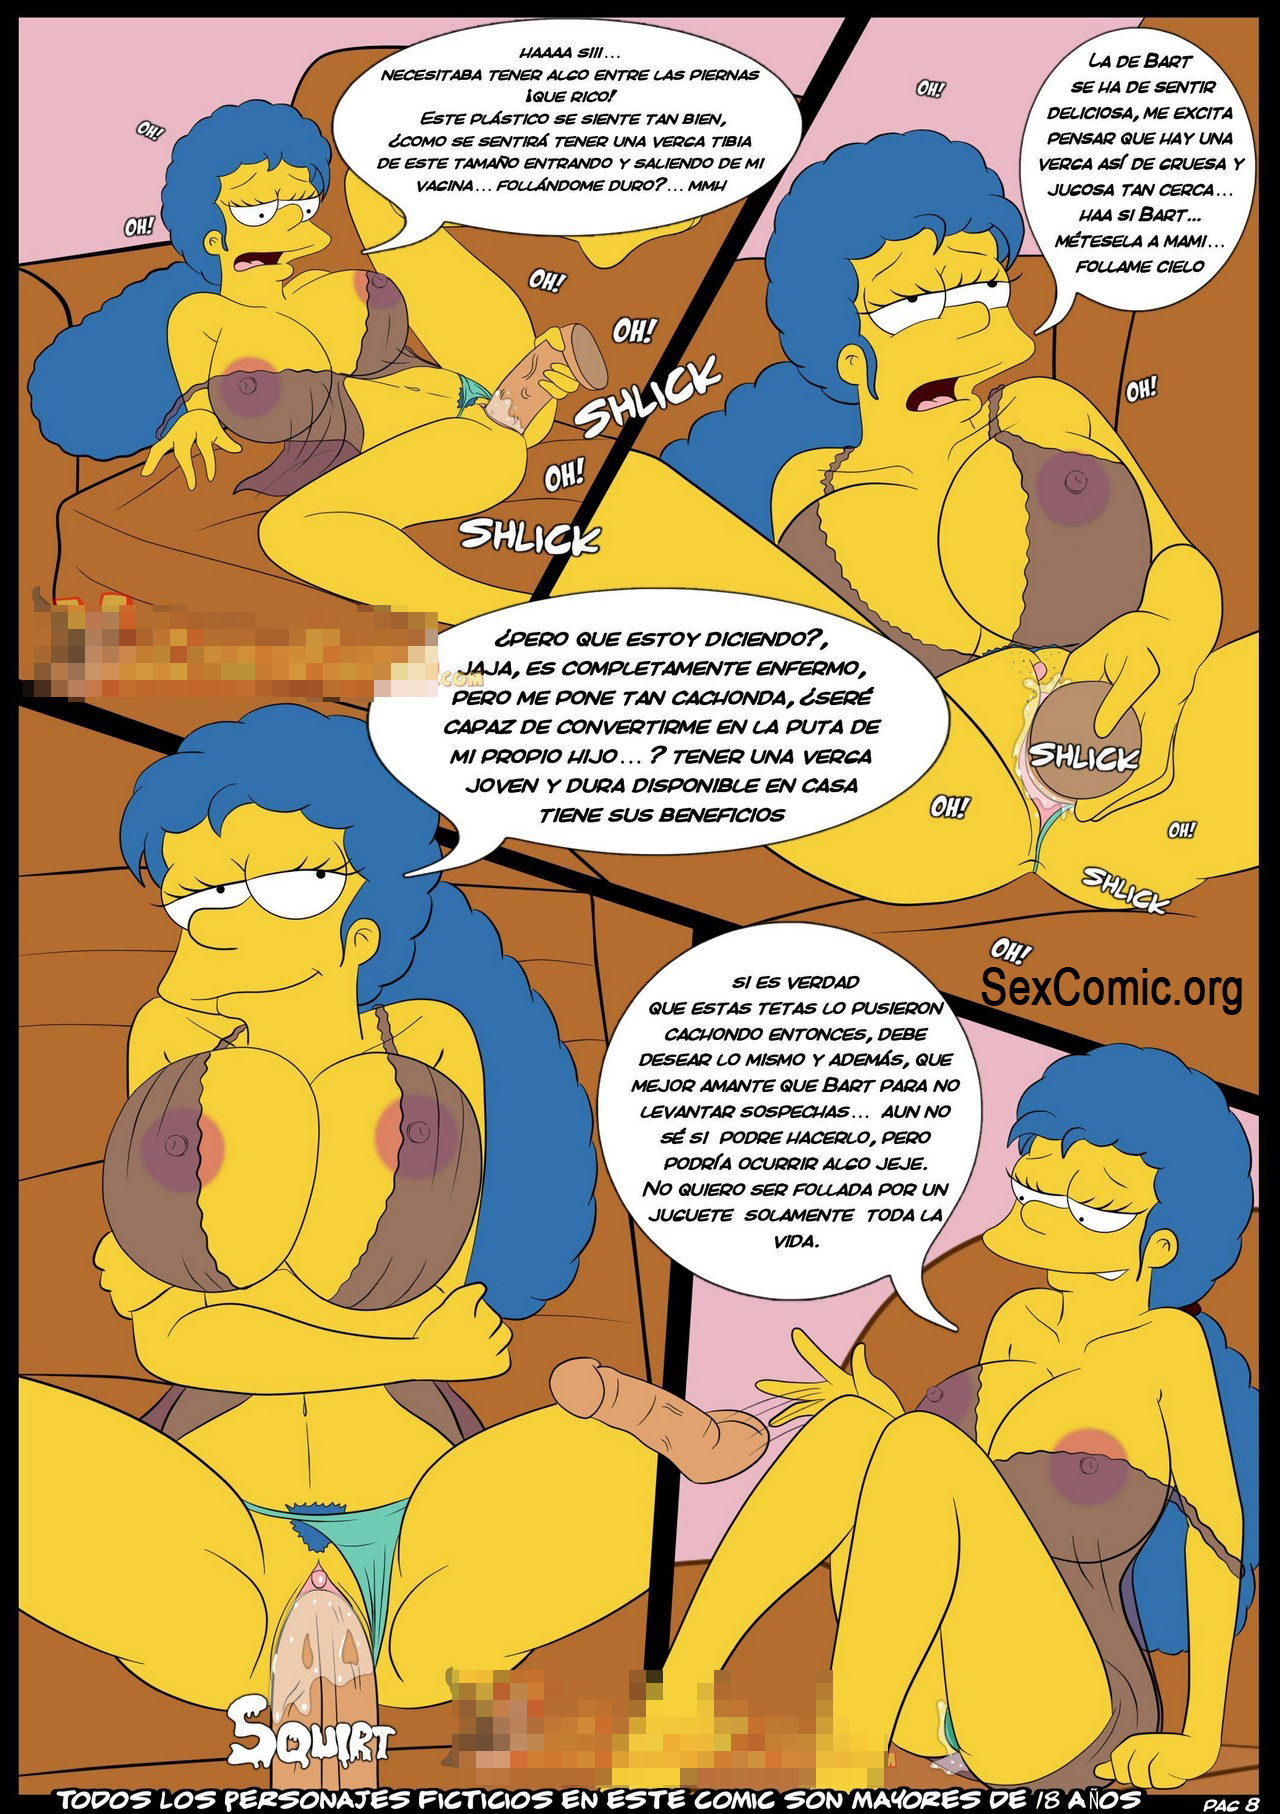 Los Simpsons xxx -incesto-bart-march-follando-cogiendo-sexo-desnuda-video-historieta-comic-los-simpsons-porno-follando-con-mama (9)